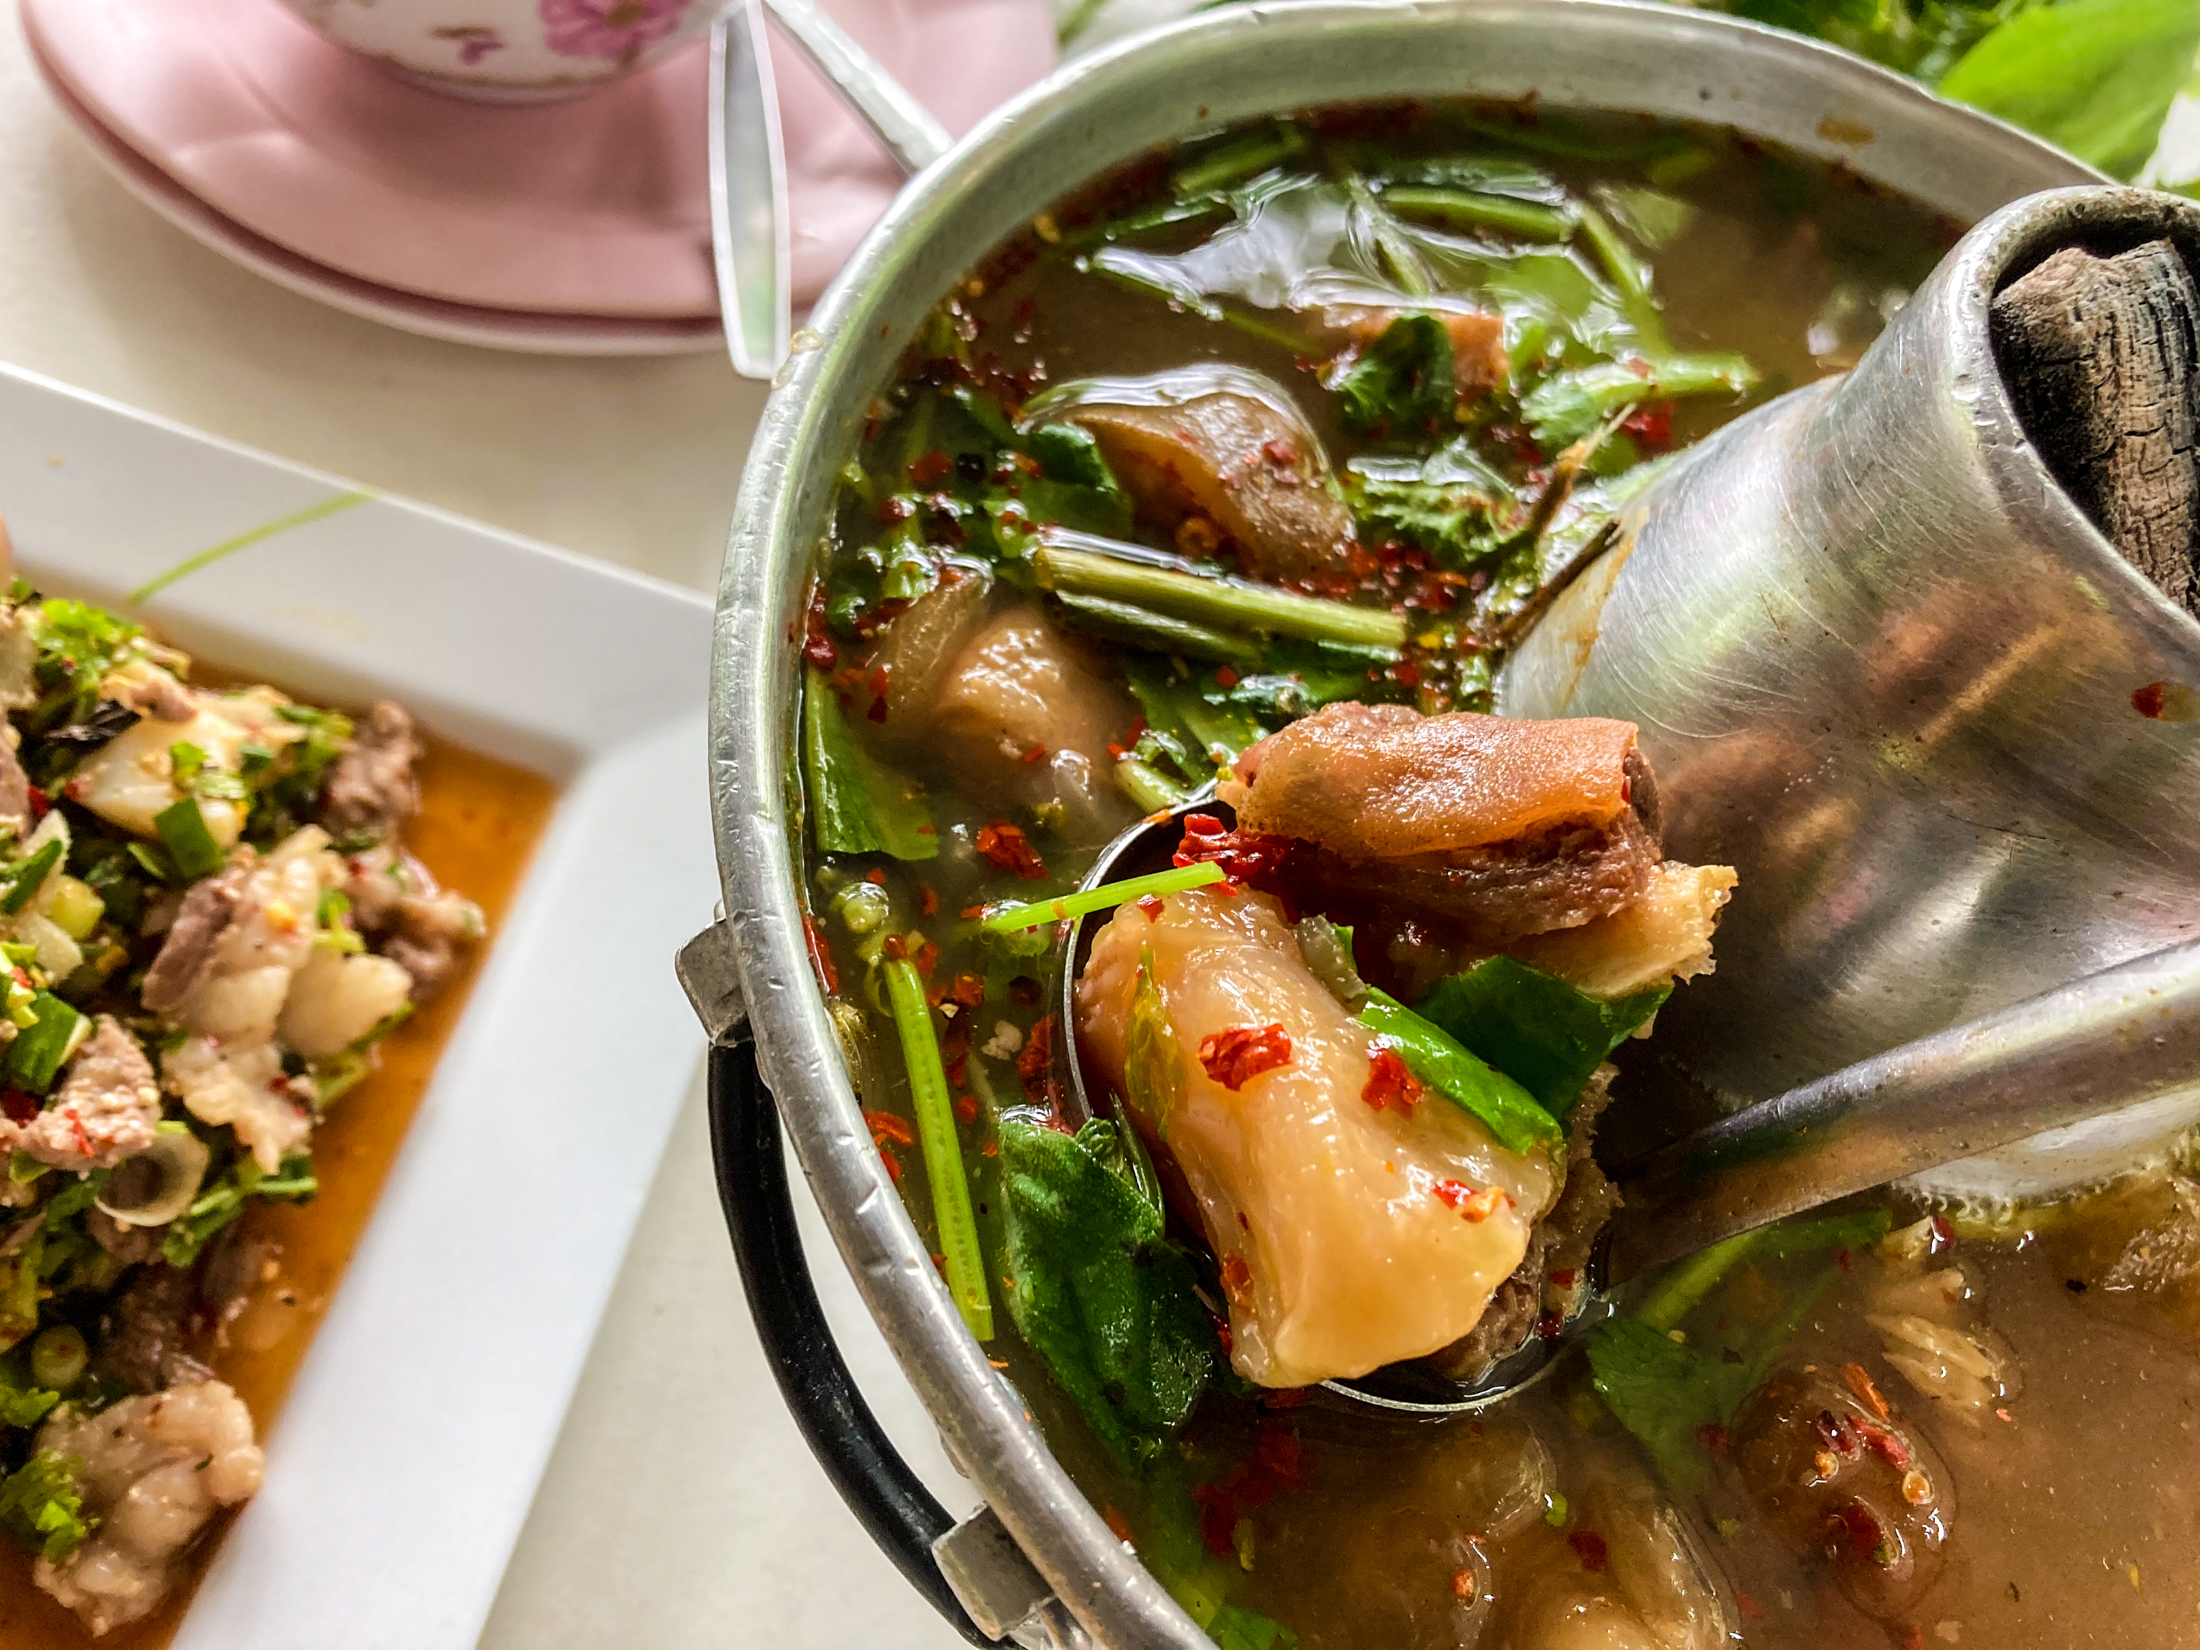 Just reading the name of this dish, it might be surprising to hear of oxtail soup as 'Thai' food.